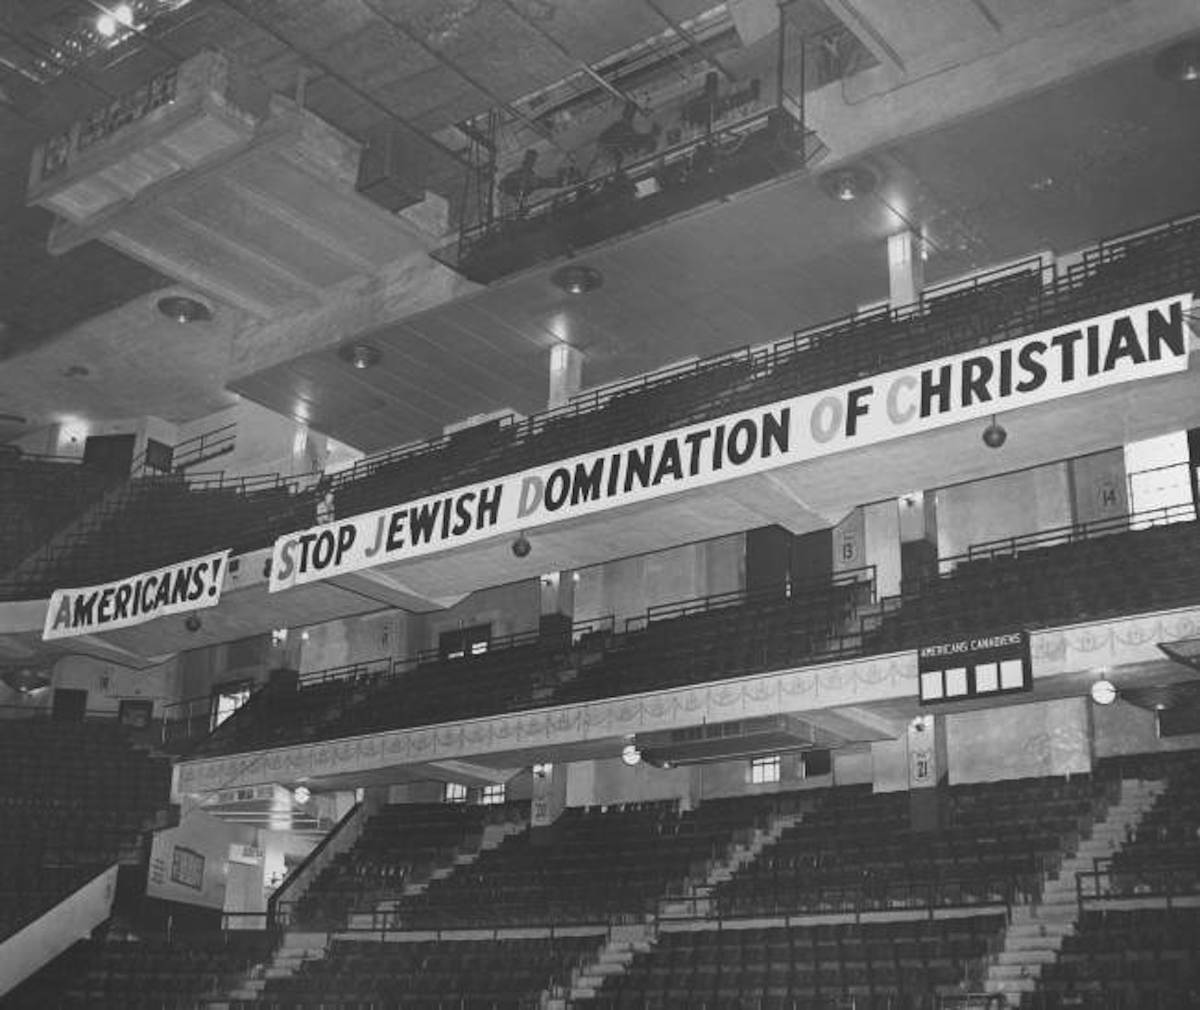 A banner with an anti-Jewish slogan is displayed at Madison Square, New York, February 20, 1939, shortly before adherents of the German American Bund, an organization largely financed by the government of Nazi Germany, began marching in for a rally.